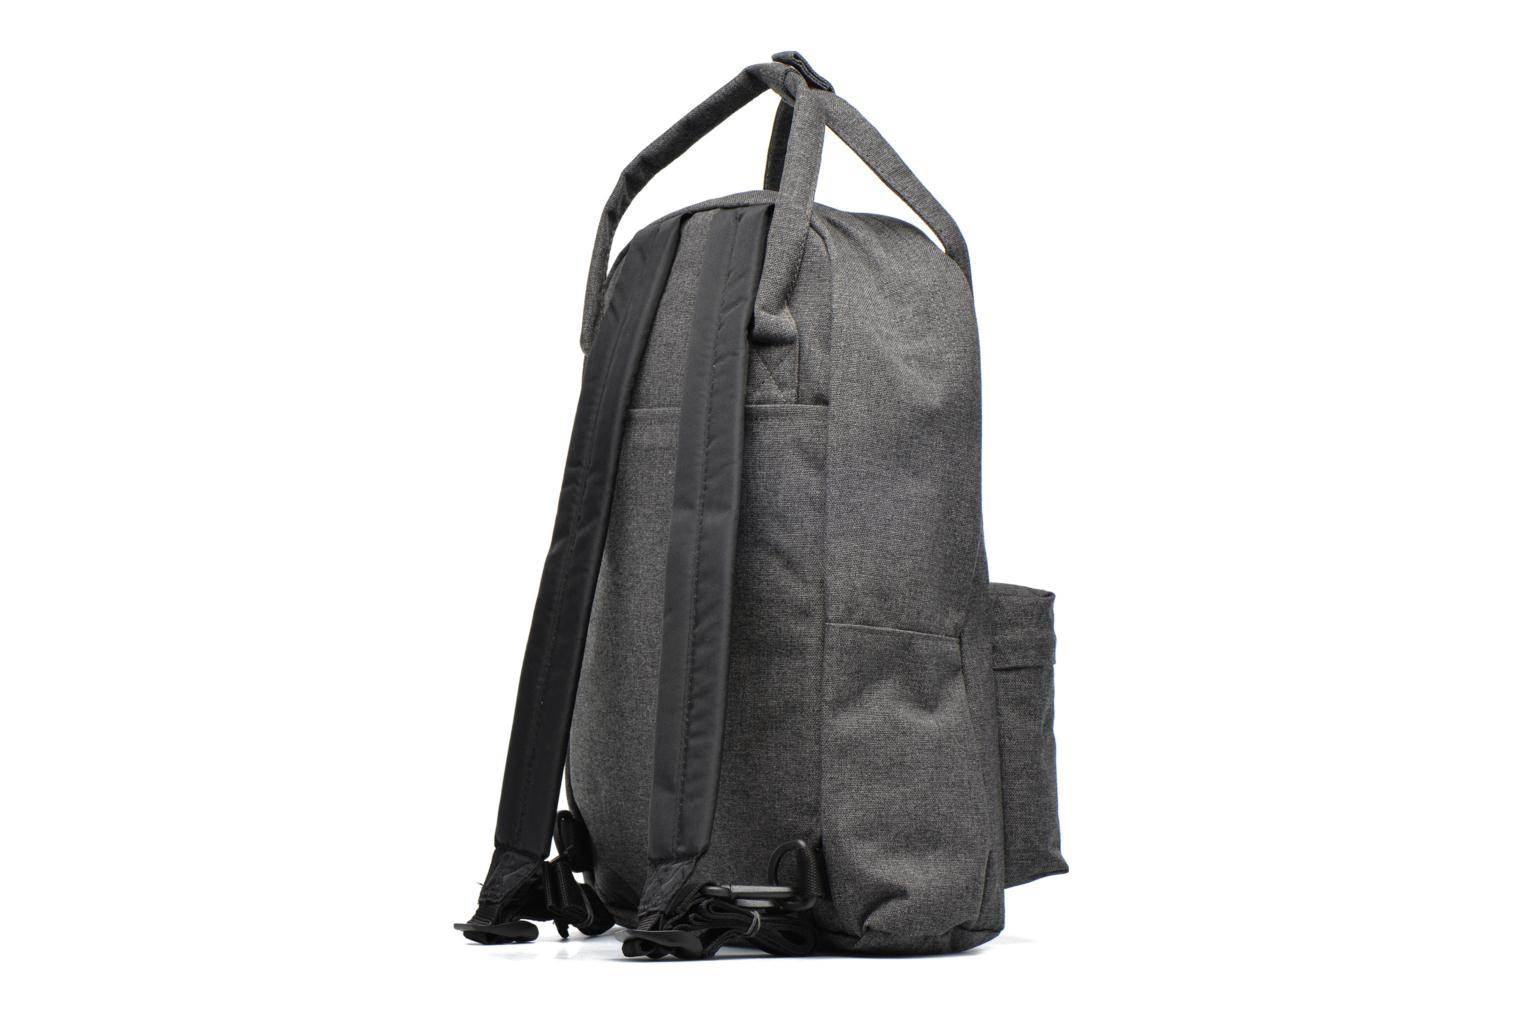 PADDED SHOP'R Sac à dos toile Black Denim